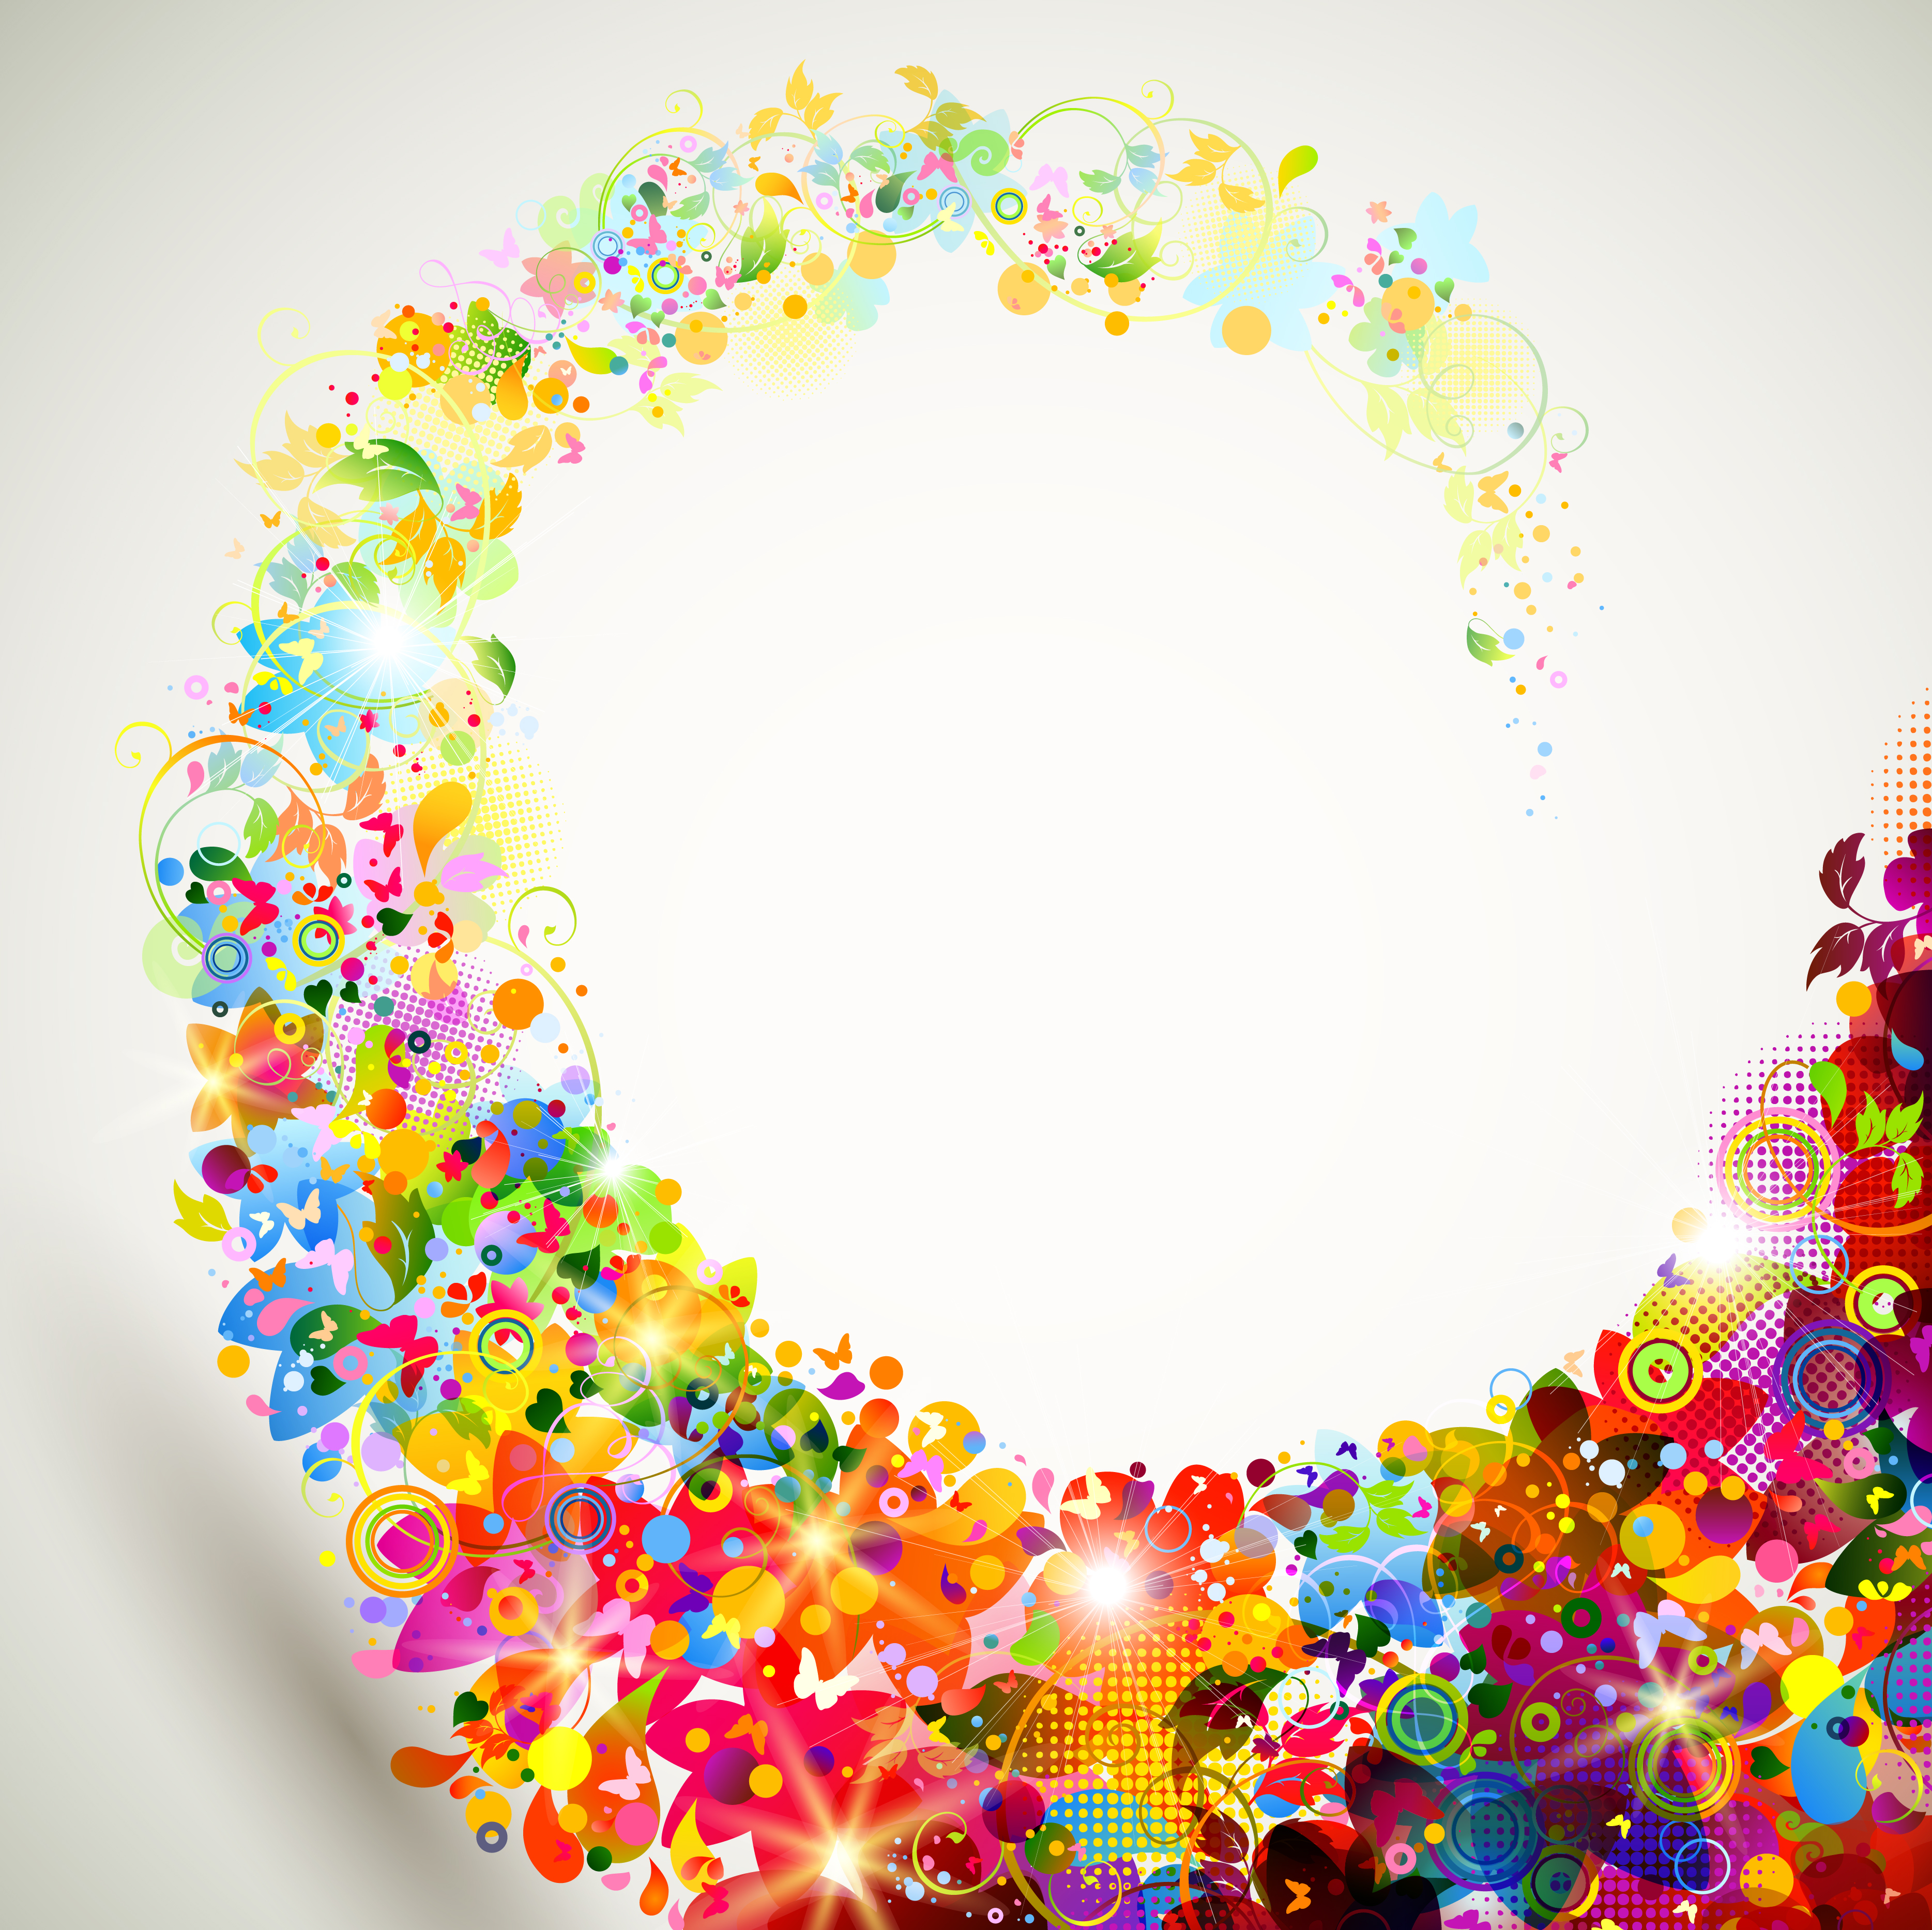 Vibrant color background in riotous profusion beautiful - Vibrant background ...